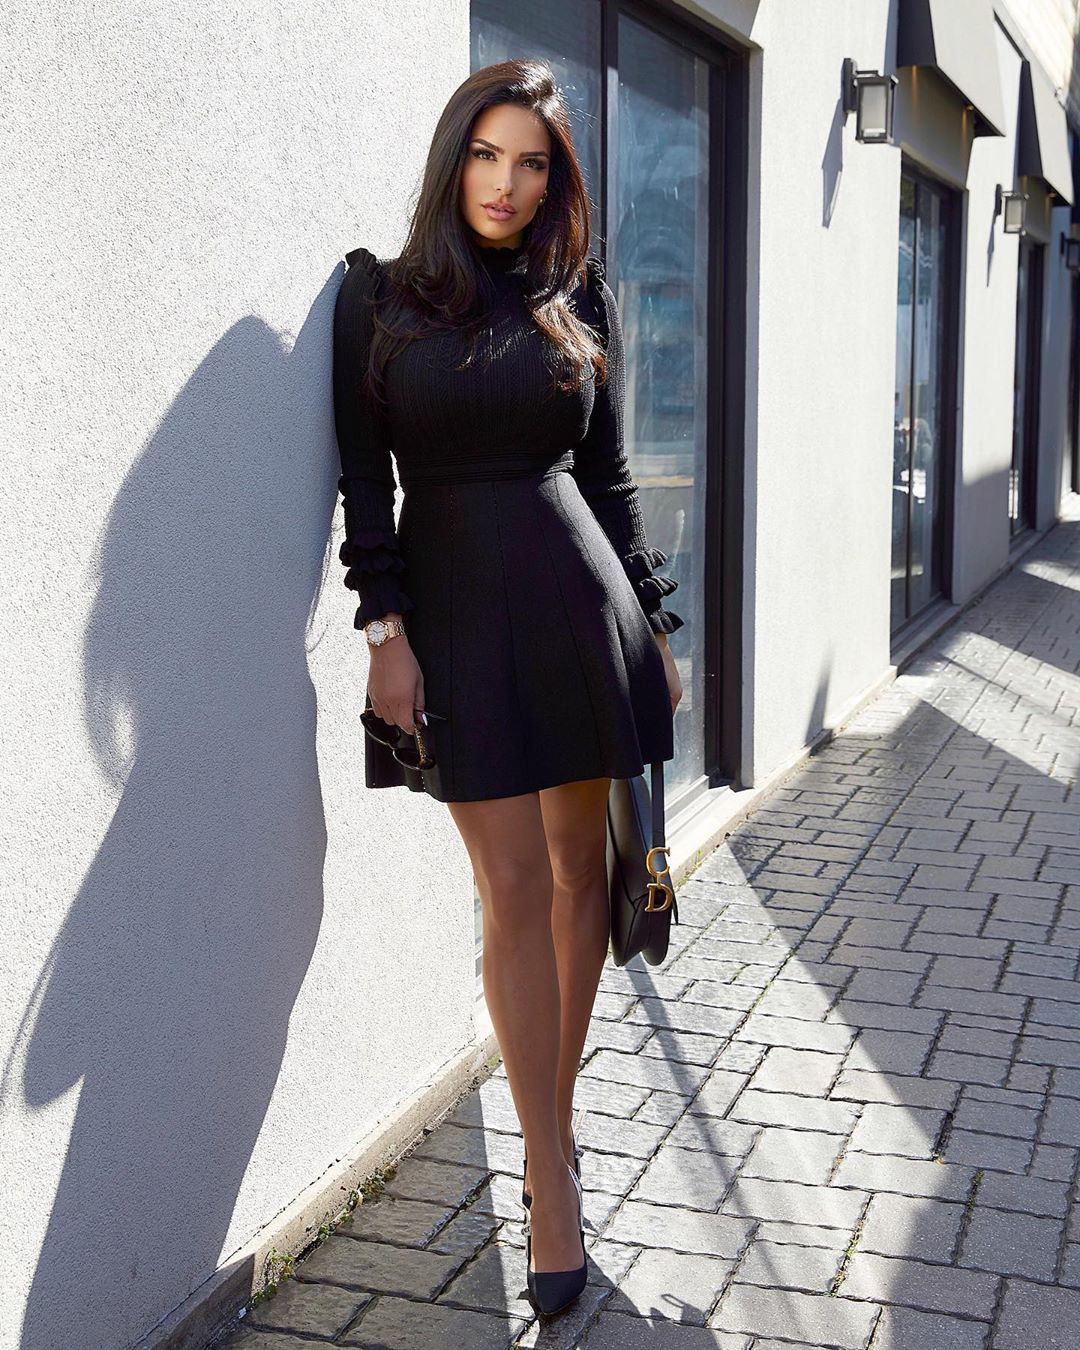 black colour outfit with dress, girls instagram photos, legs picture